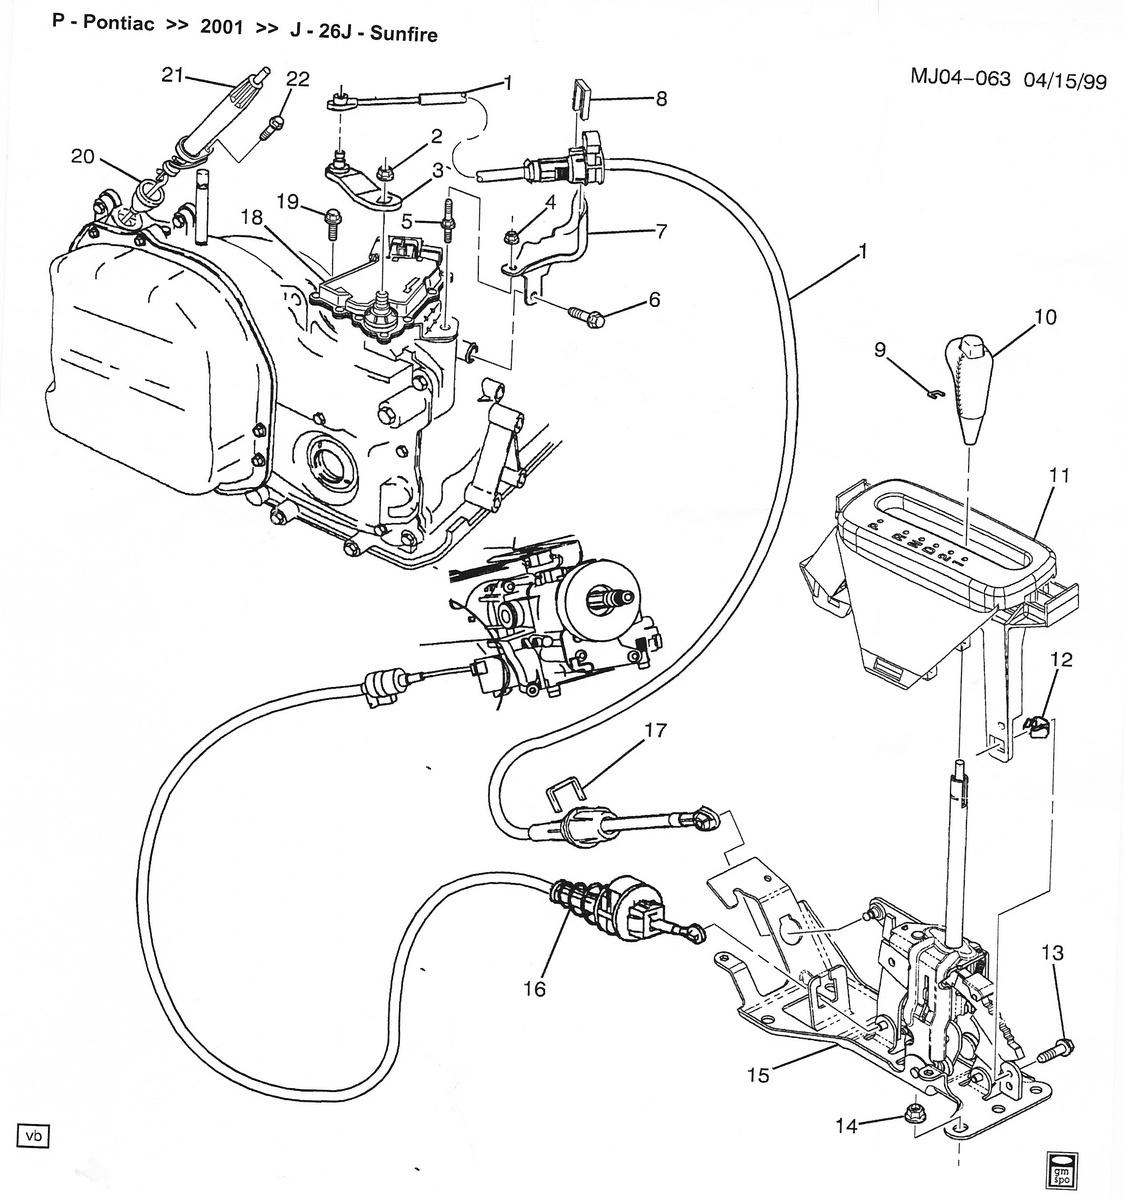 Chevrolet Cavalier Questions How To Repair My Shifter Linkage 96 Express Wiring Diagram Cargurus